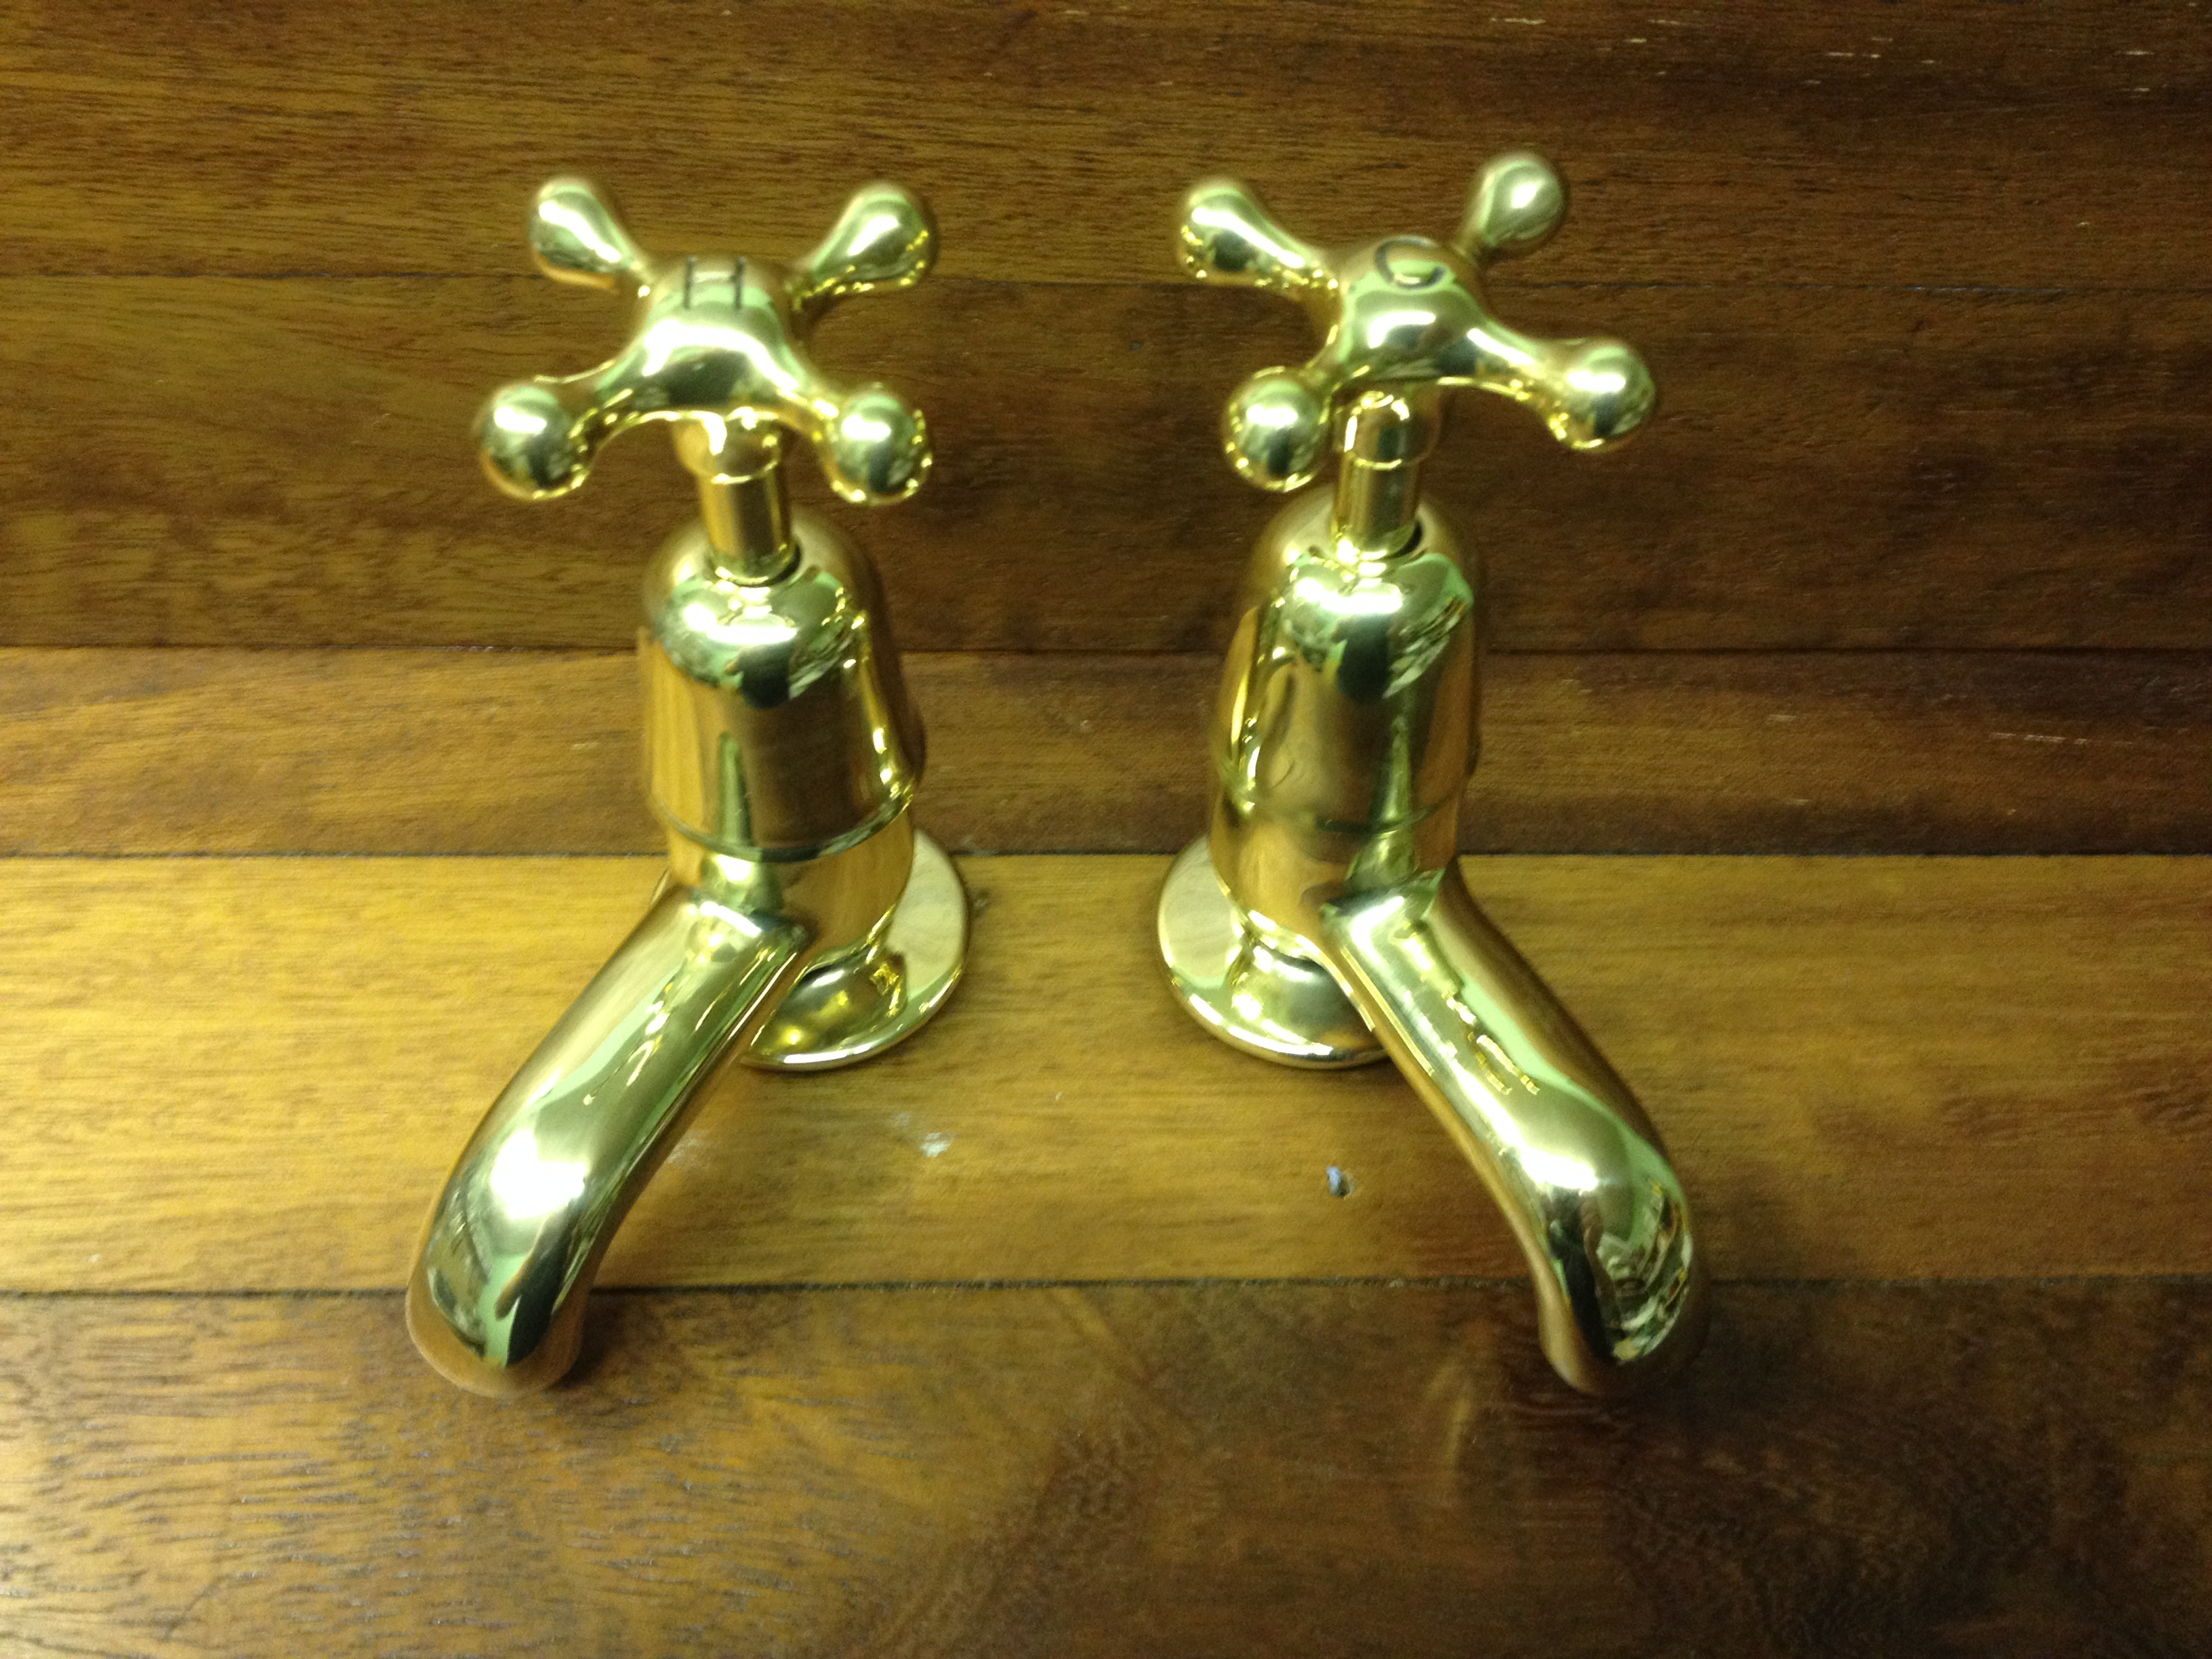 Stamped indices on brass basin taps.